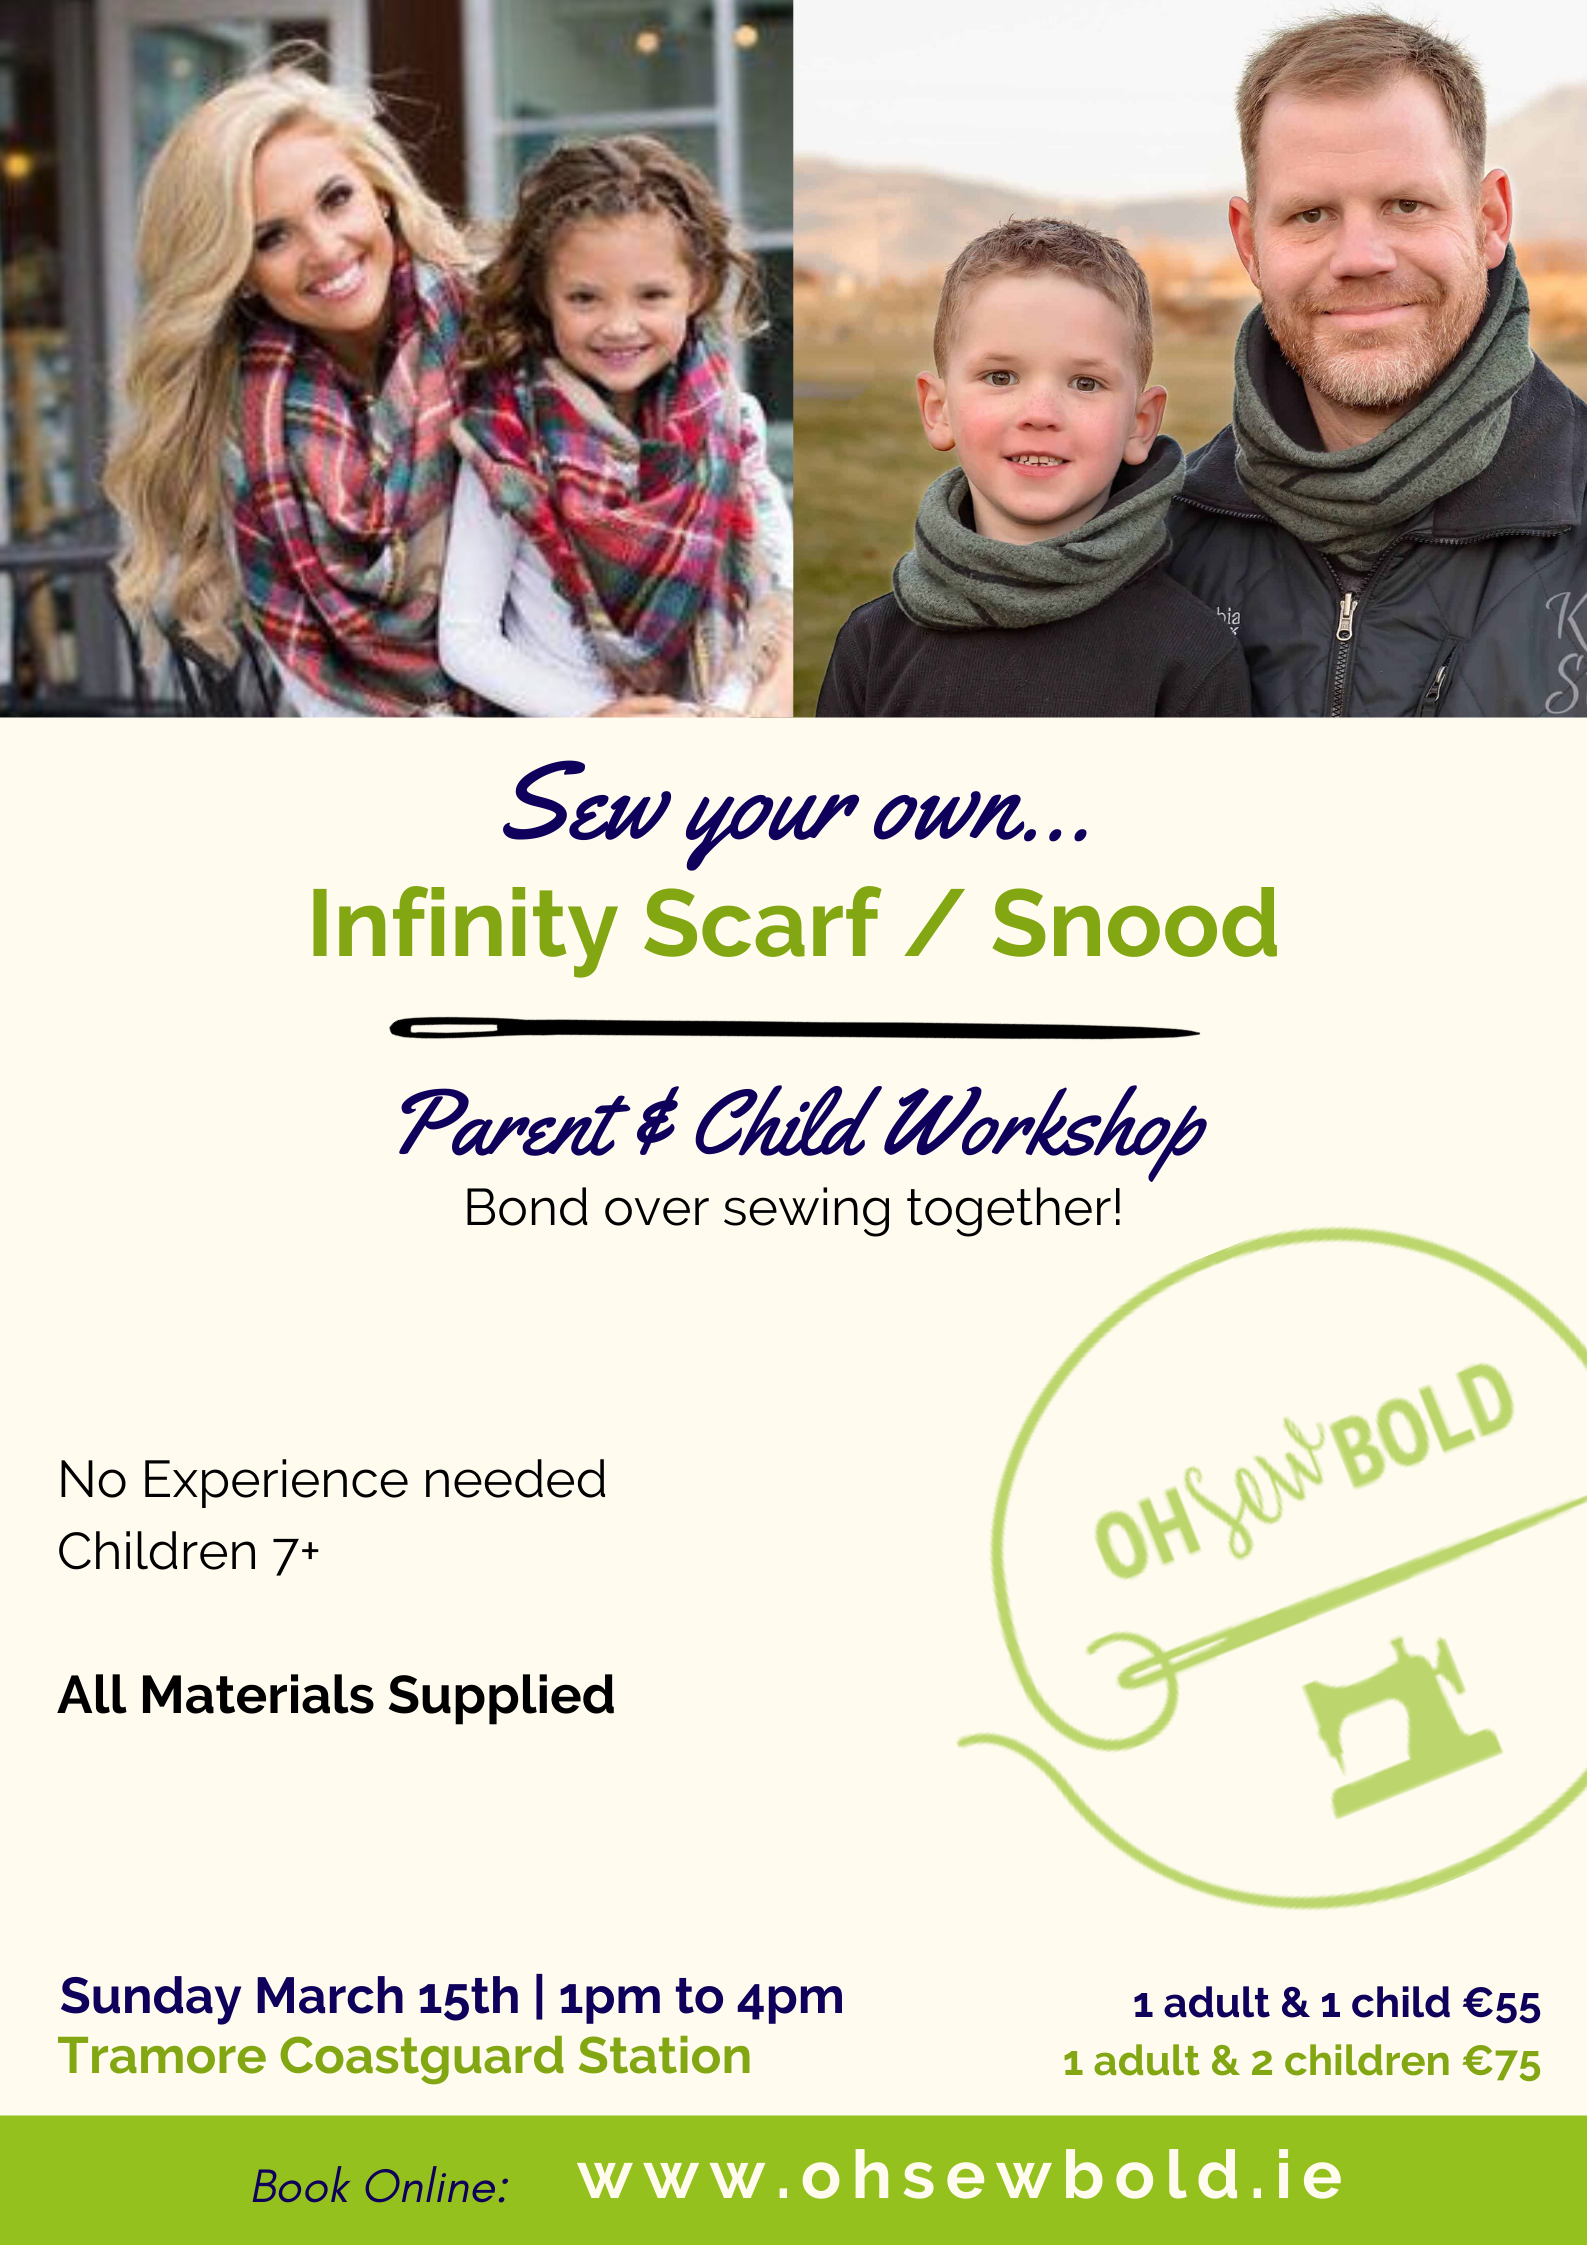 Infinity Scarf / Snood - Parent & Child Workshop